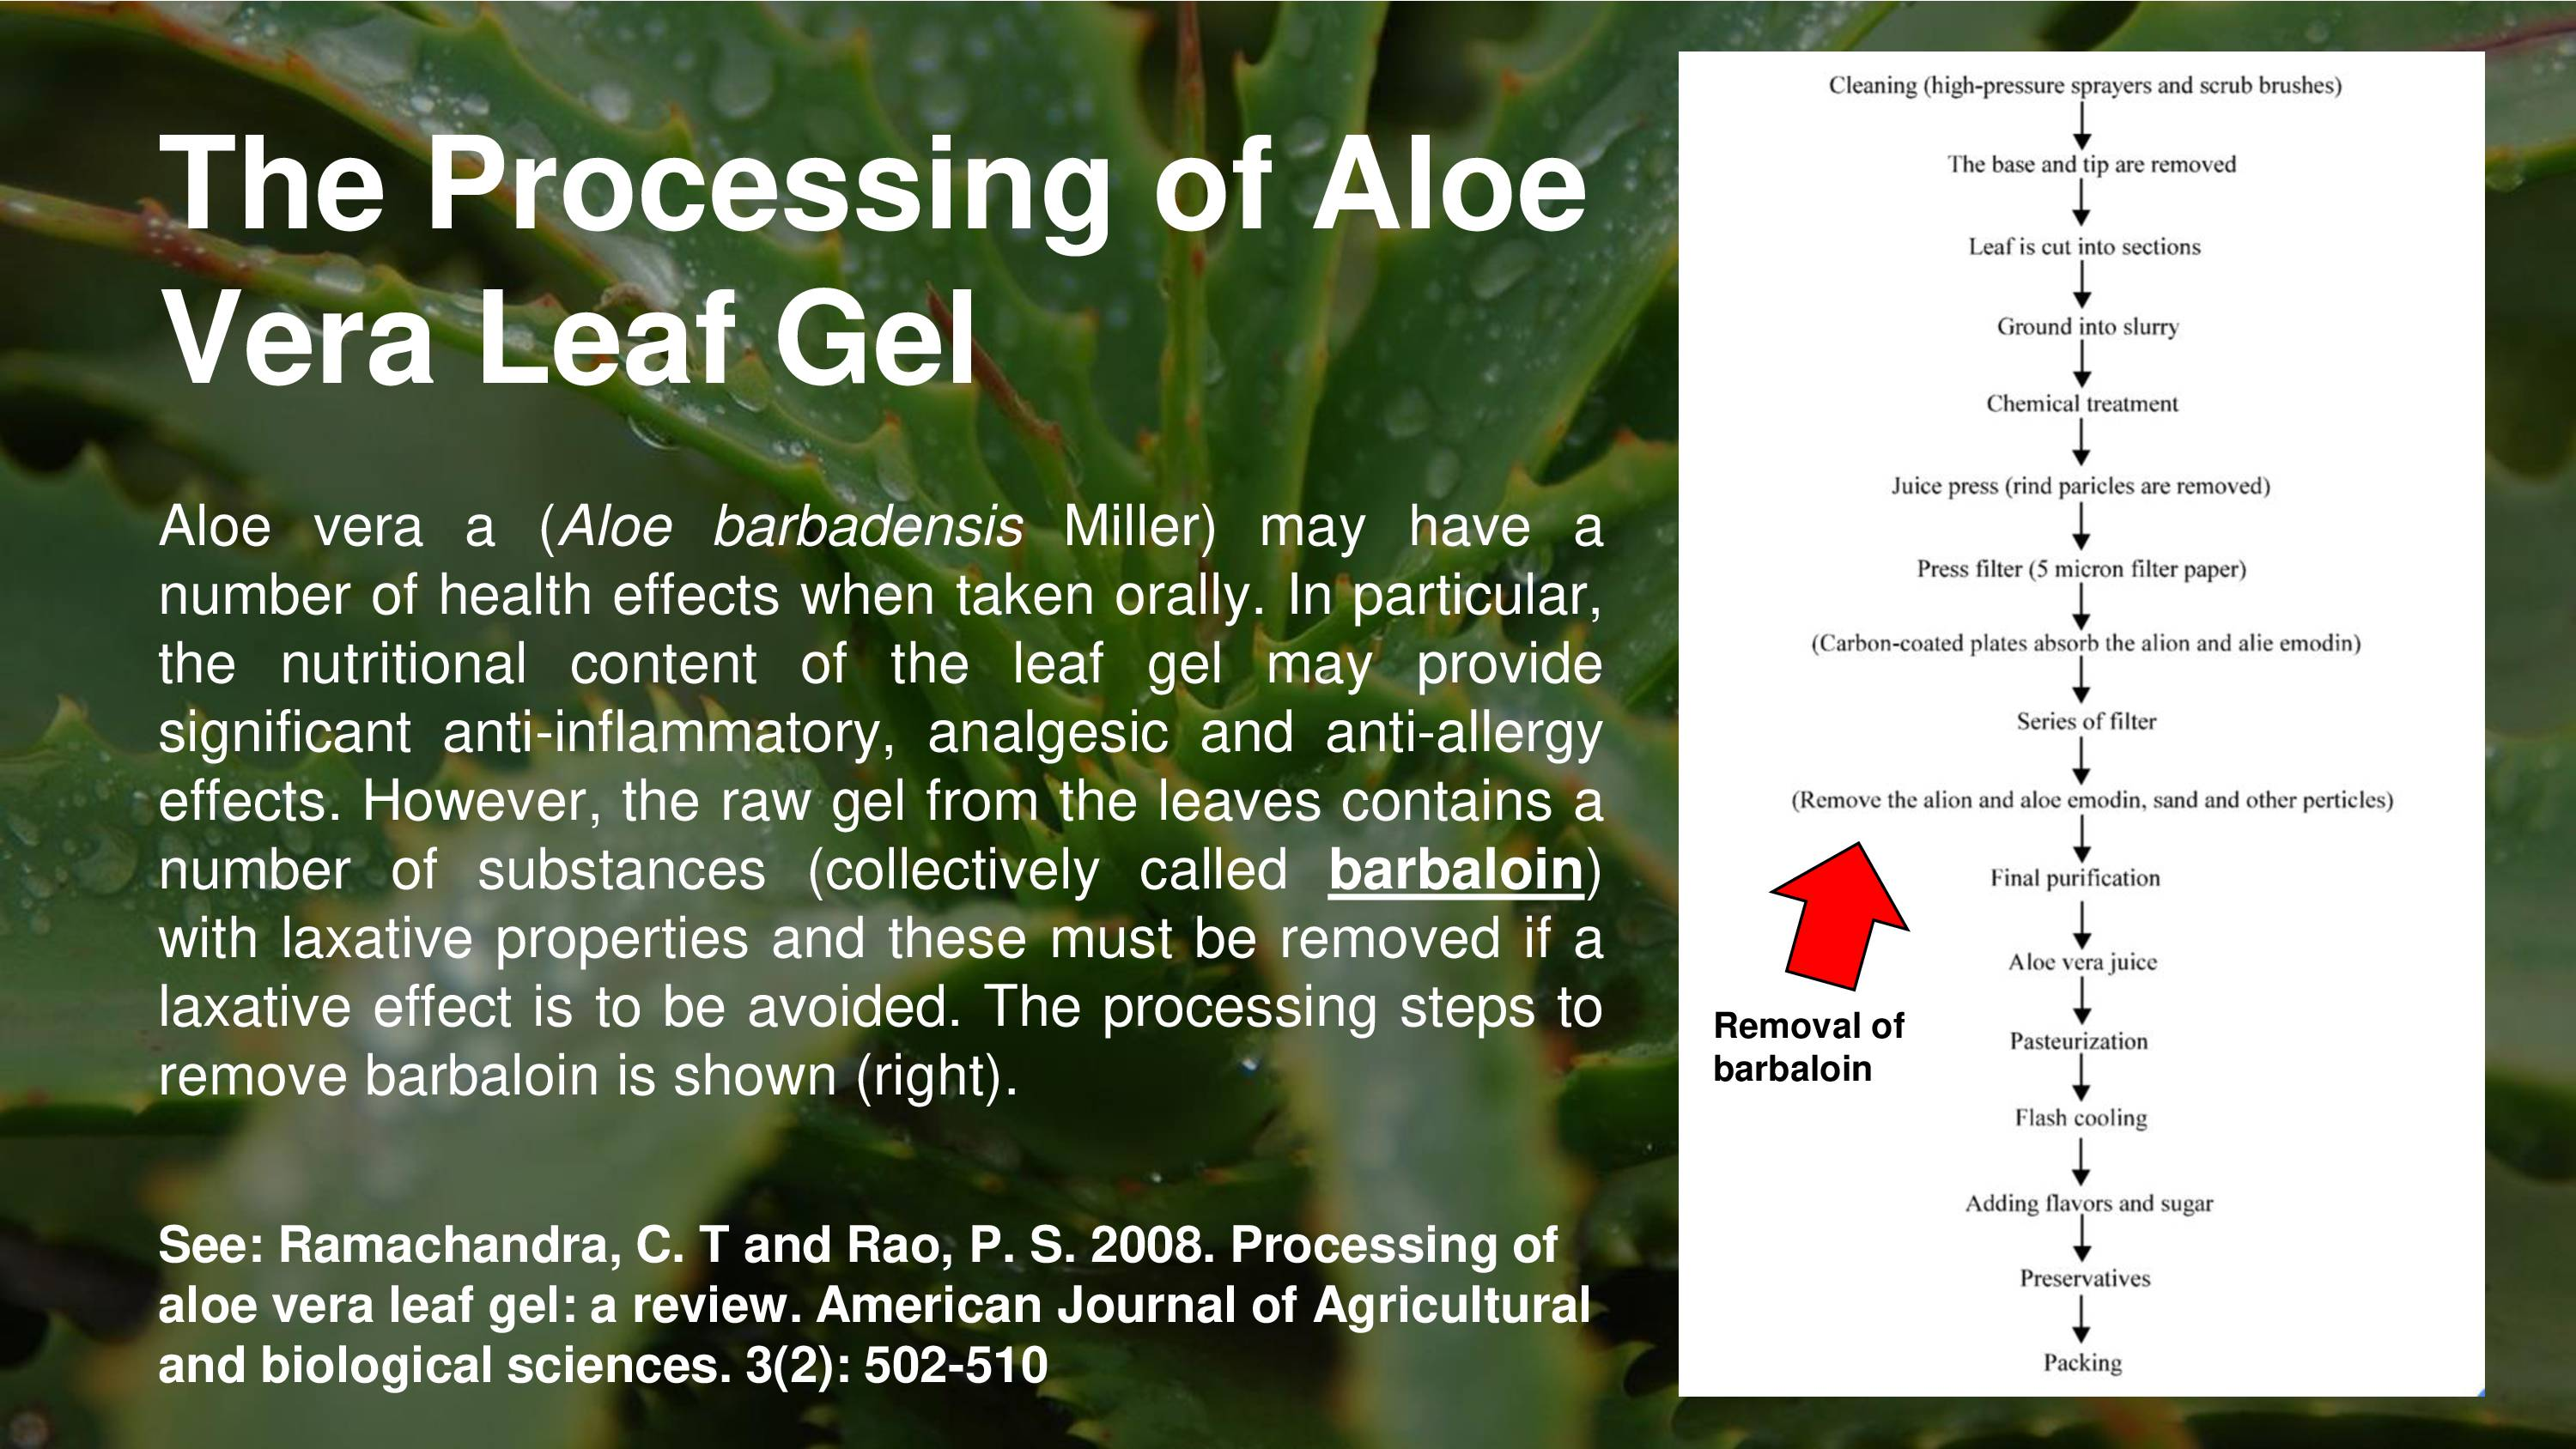 How to Extract, Use and Store Aloe Vera Gel